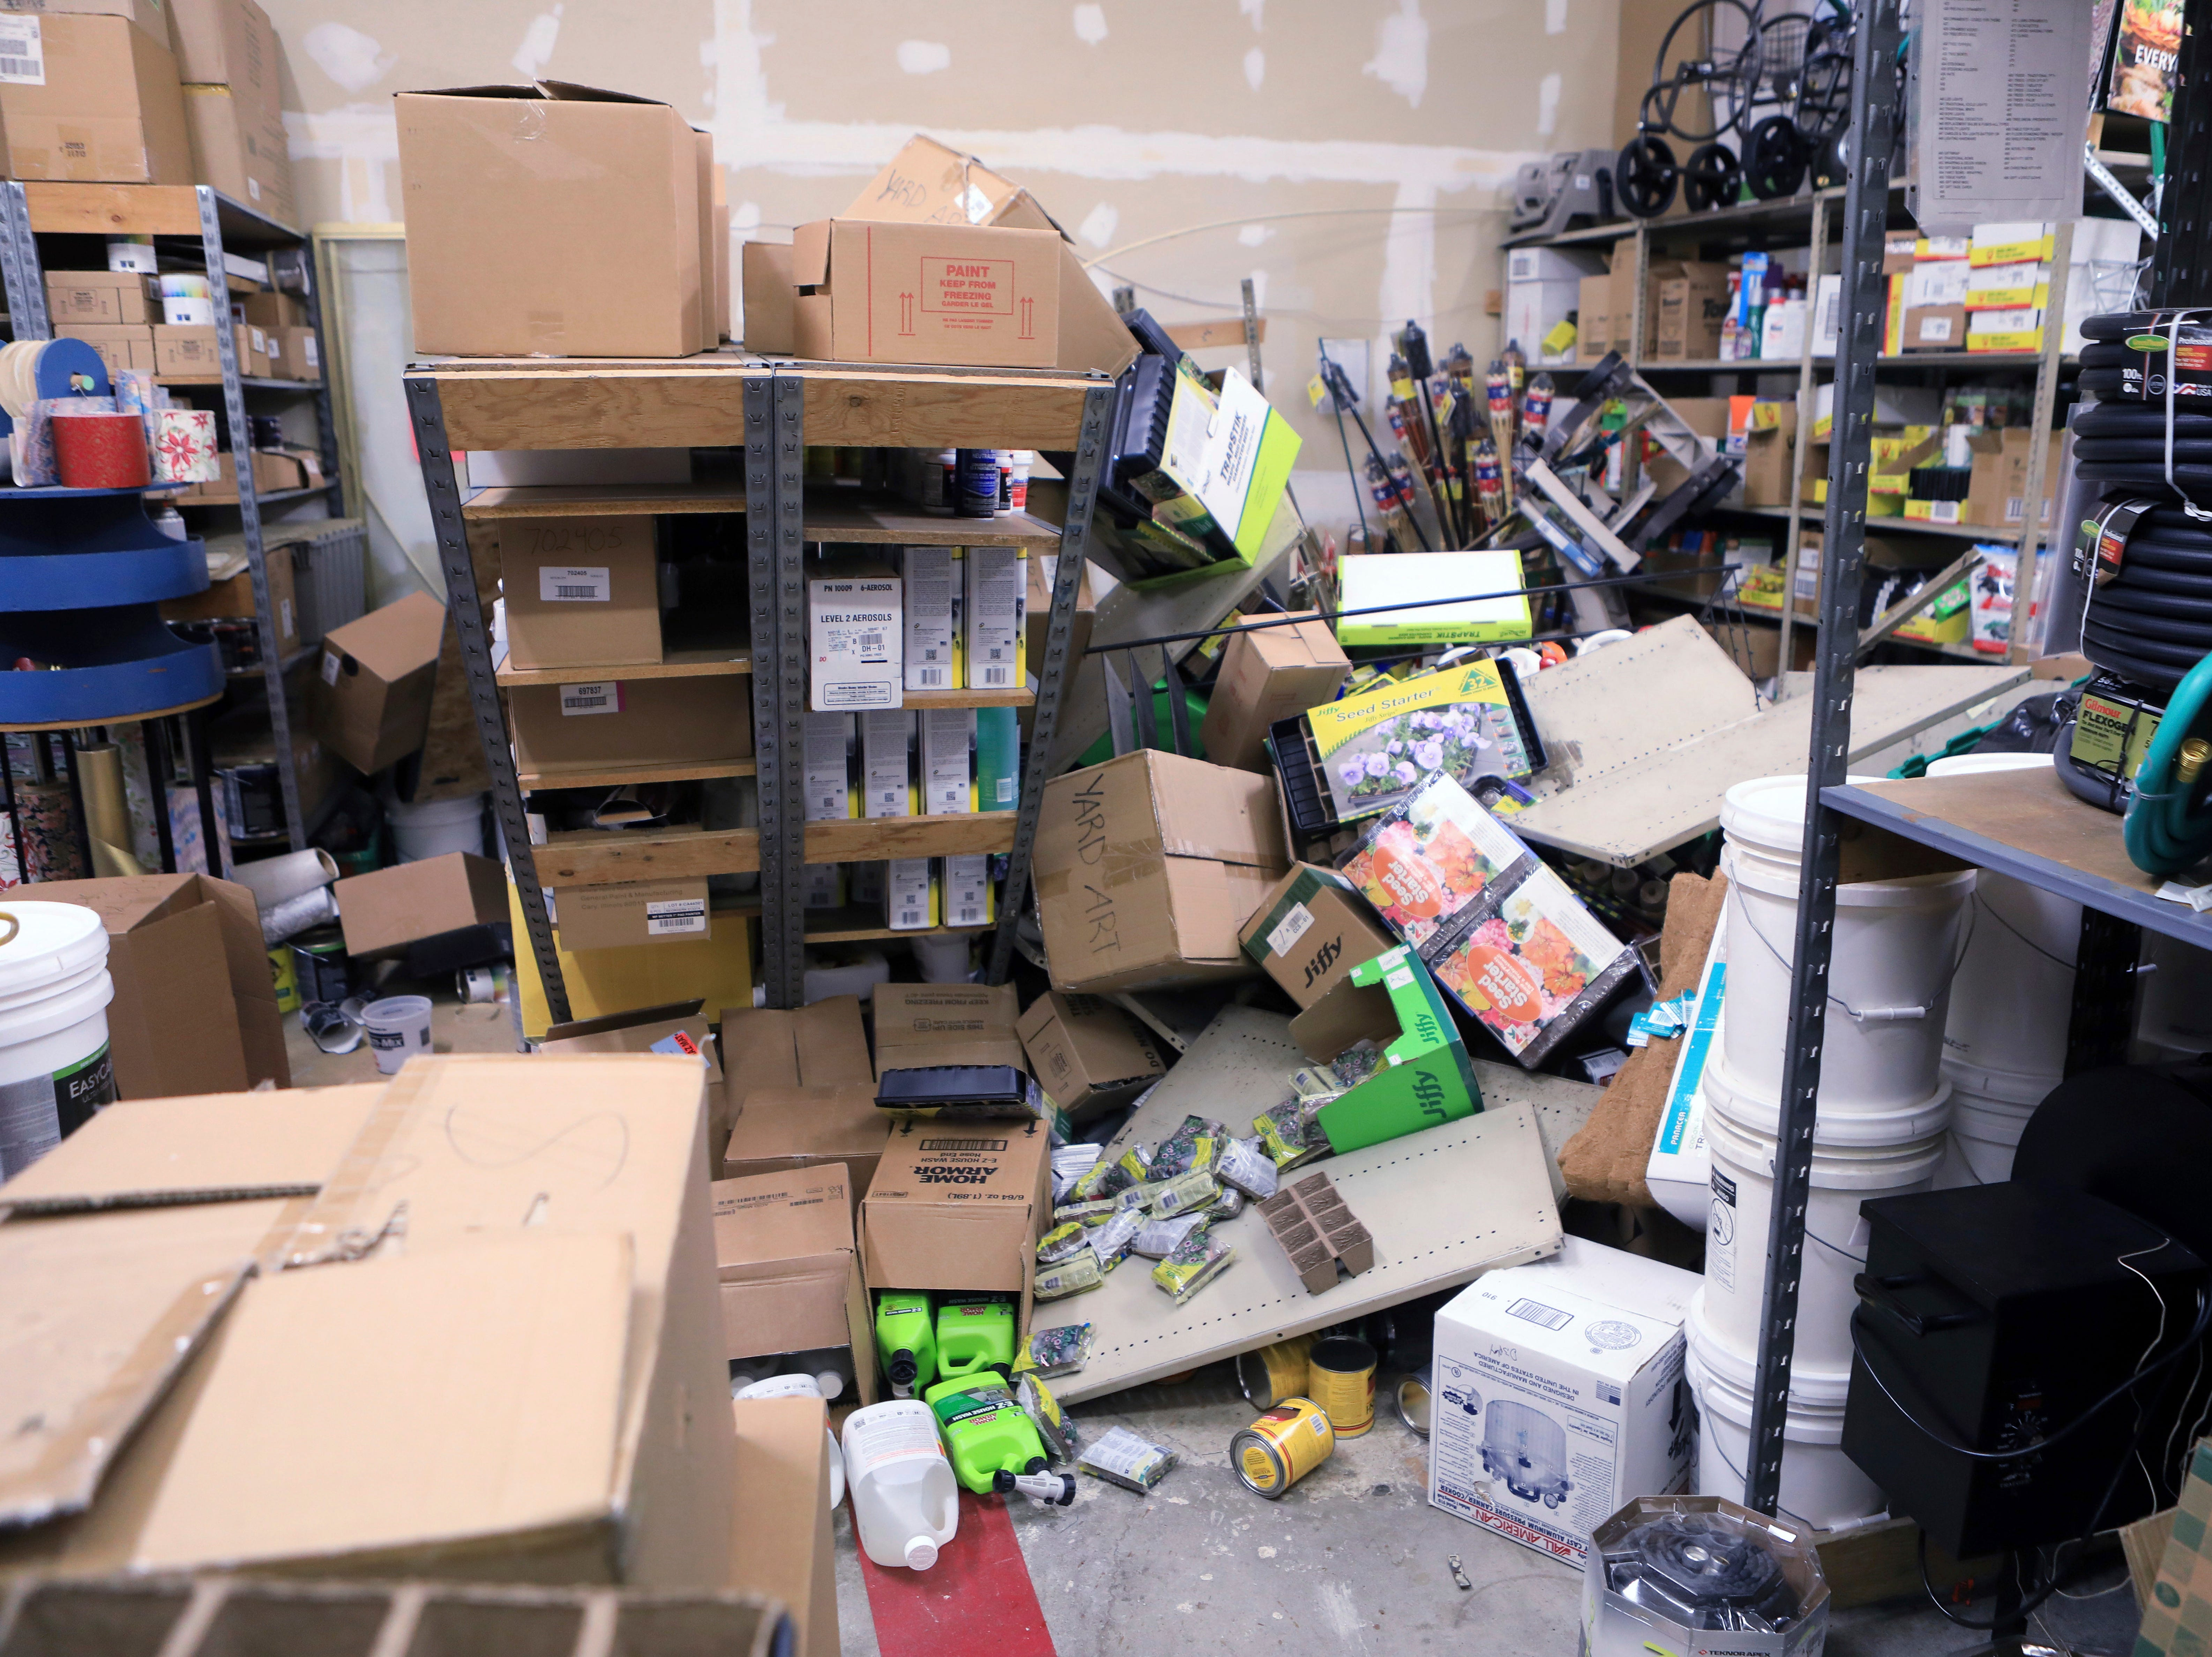 Items from two shelves that came unbolted from a wall are strewn across the floor of the stockroom of Anchorage True Value Hardware following an earthquake Friday morning, Nov. 30, 2018, in Anchorage, Alaska. Store owner Tim Craig says no one was injured in the store but hundreds of items hit the floor from shelves. He says off-duty staffers as well as customers offered to help clean up.